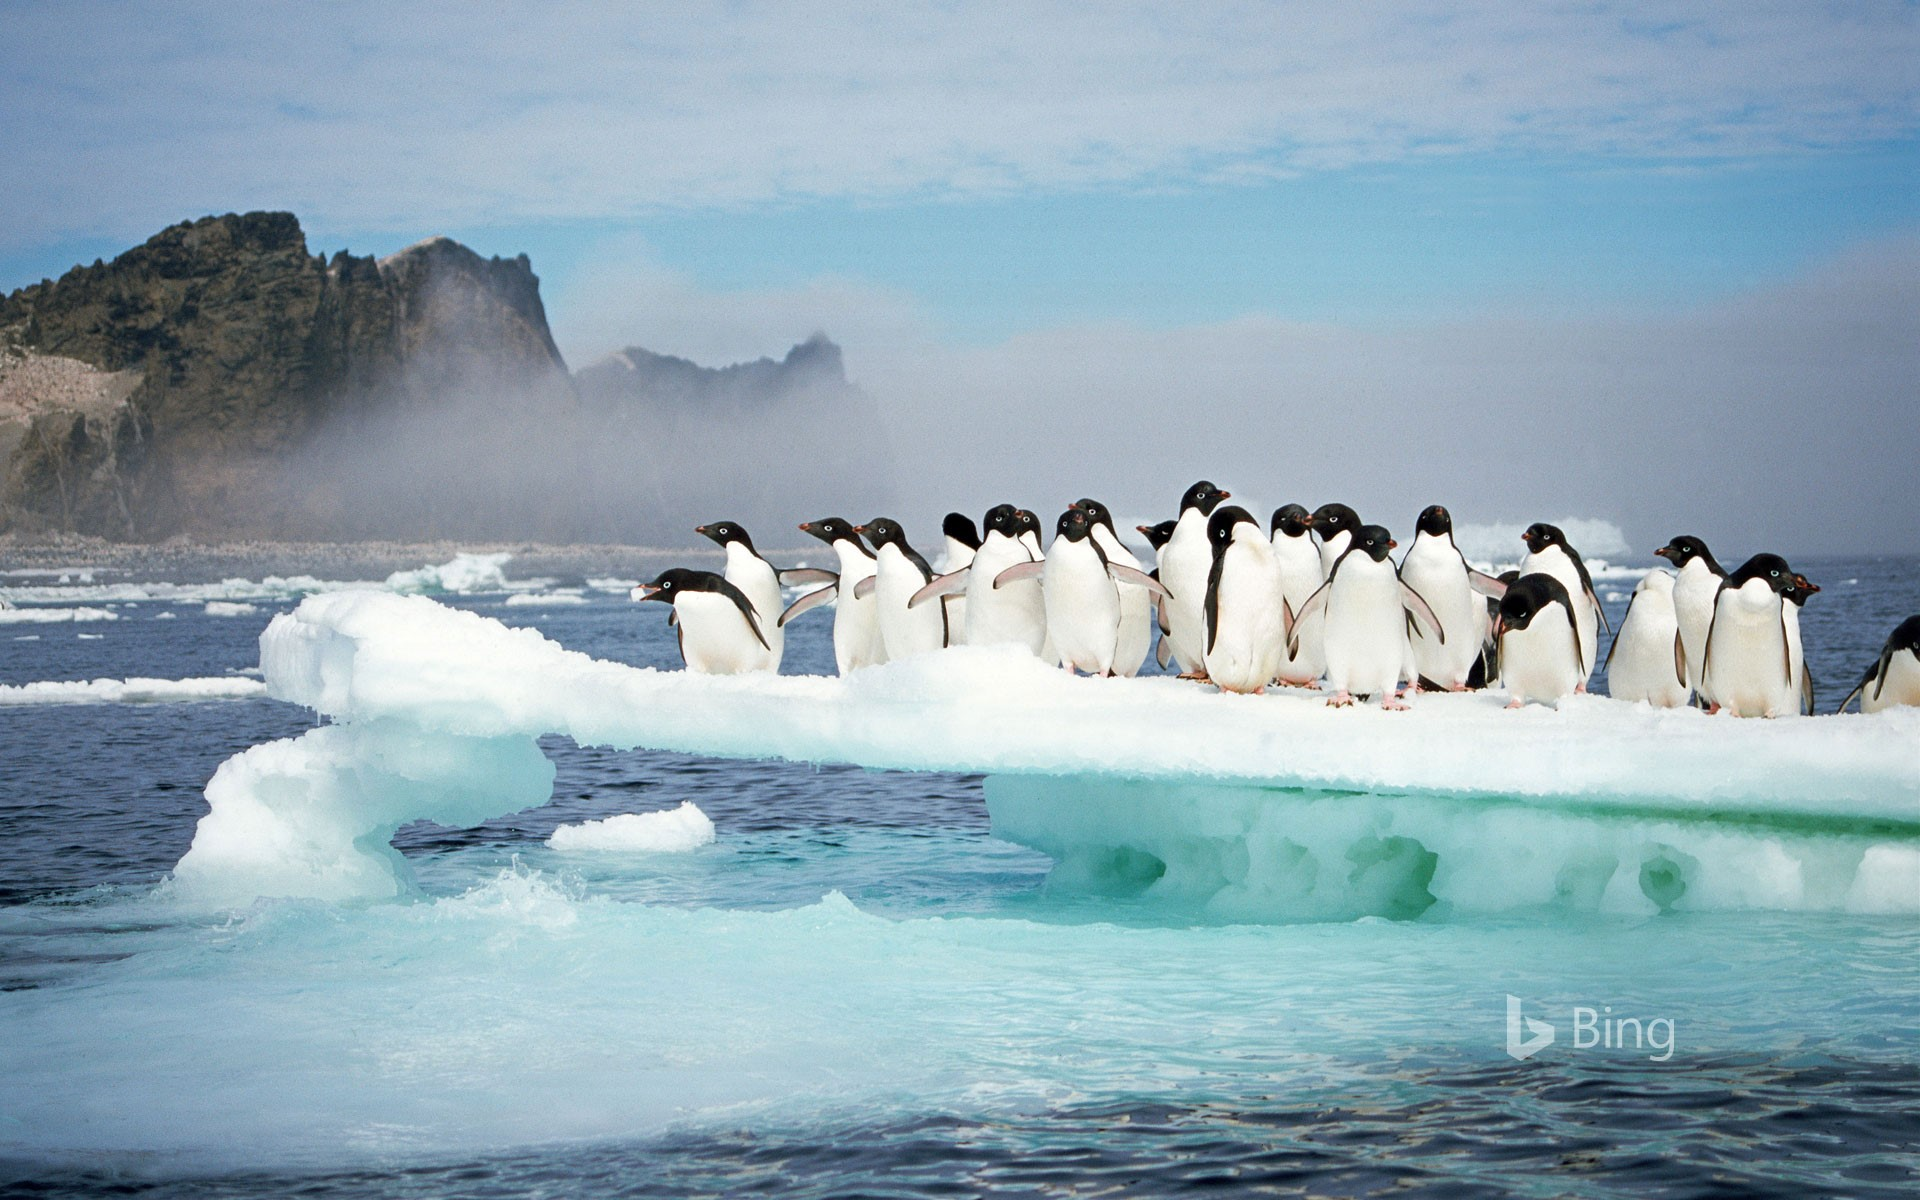 Adélie penguins at Possession Island, Antarctica